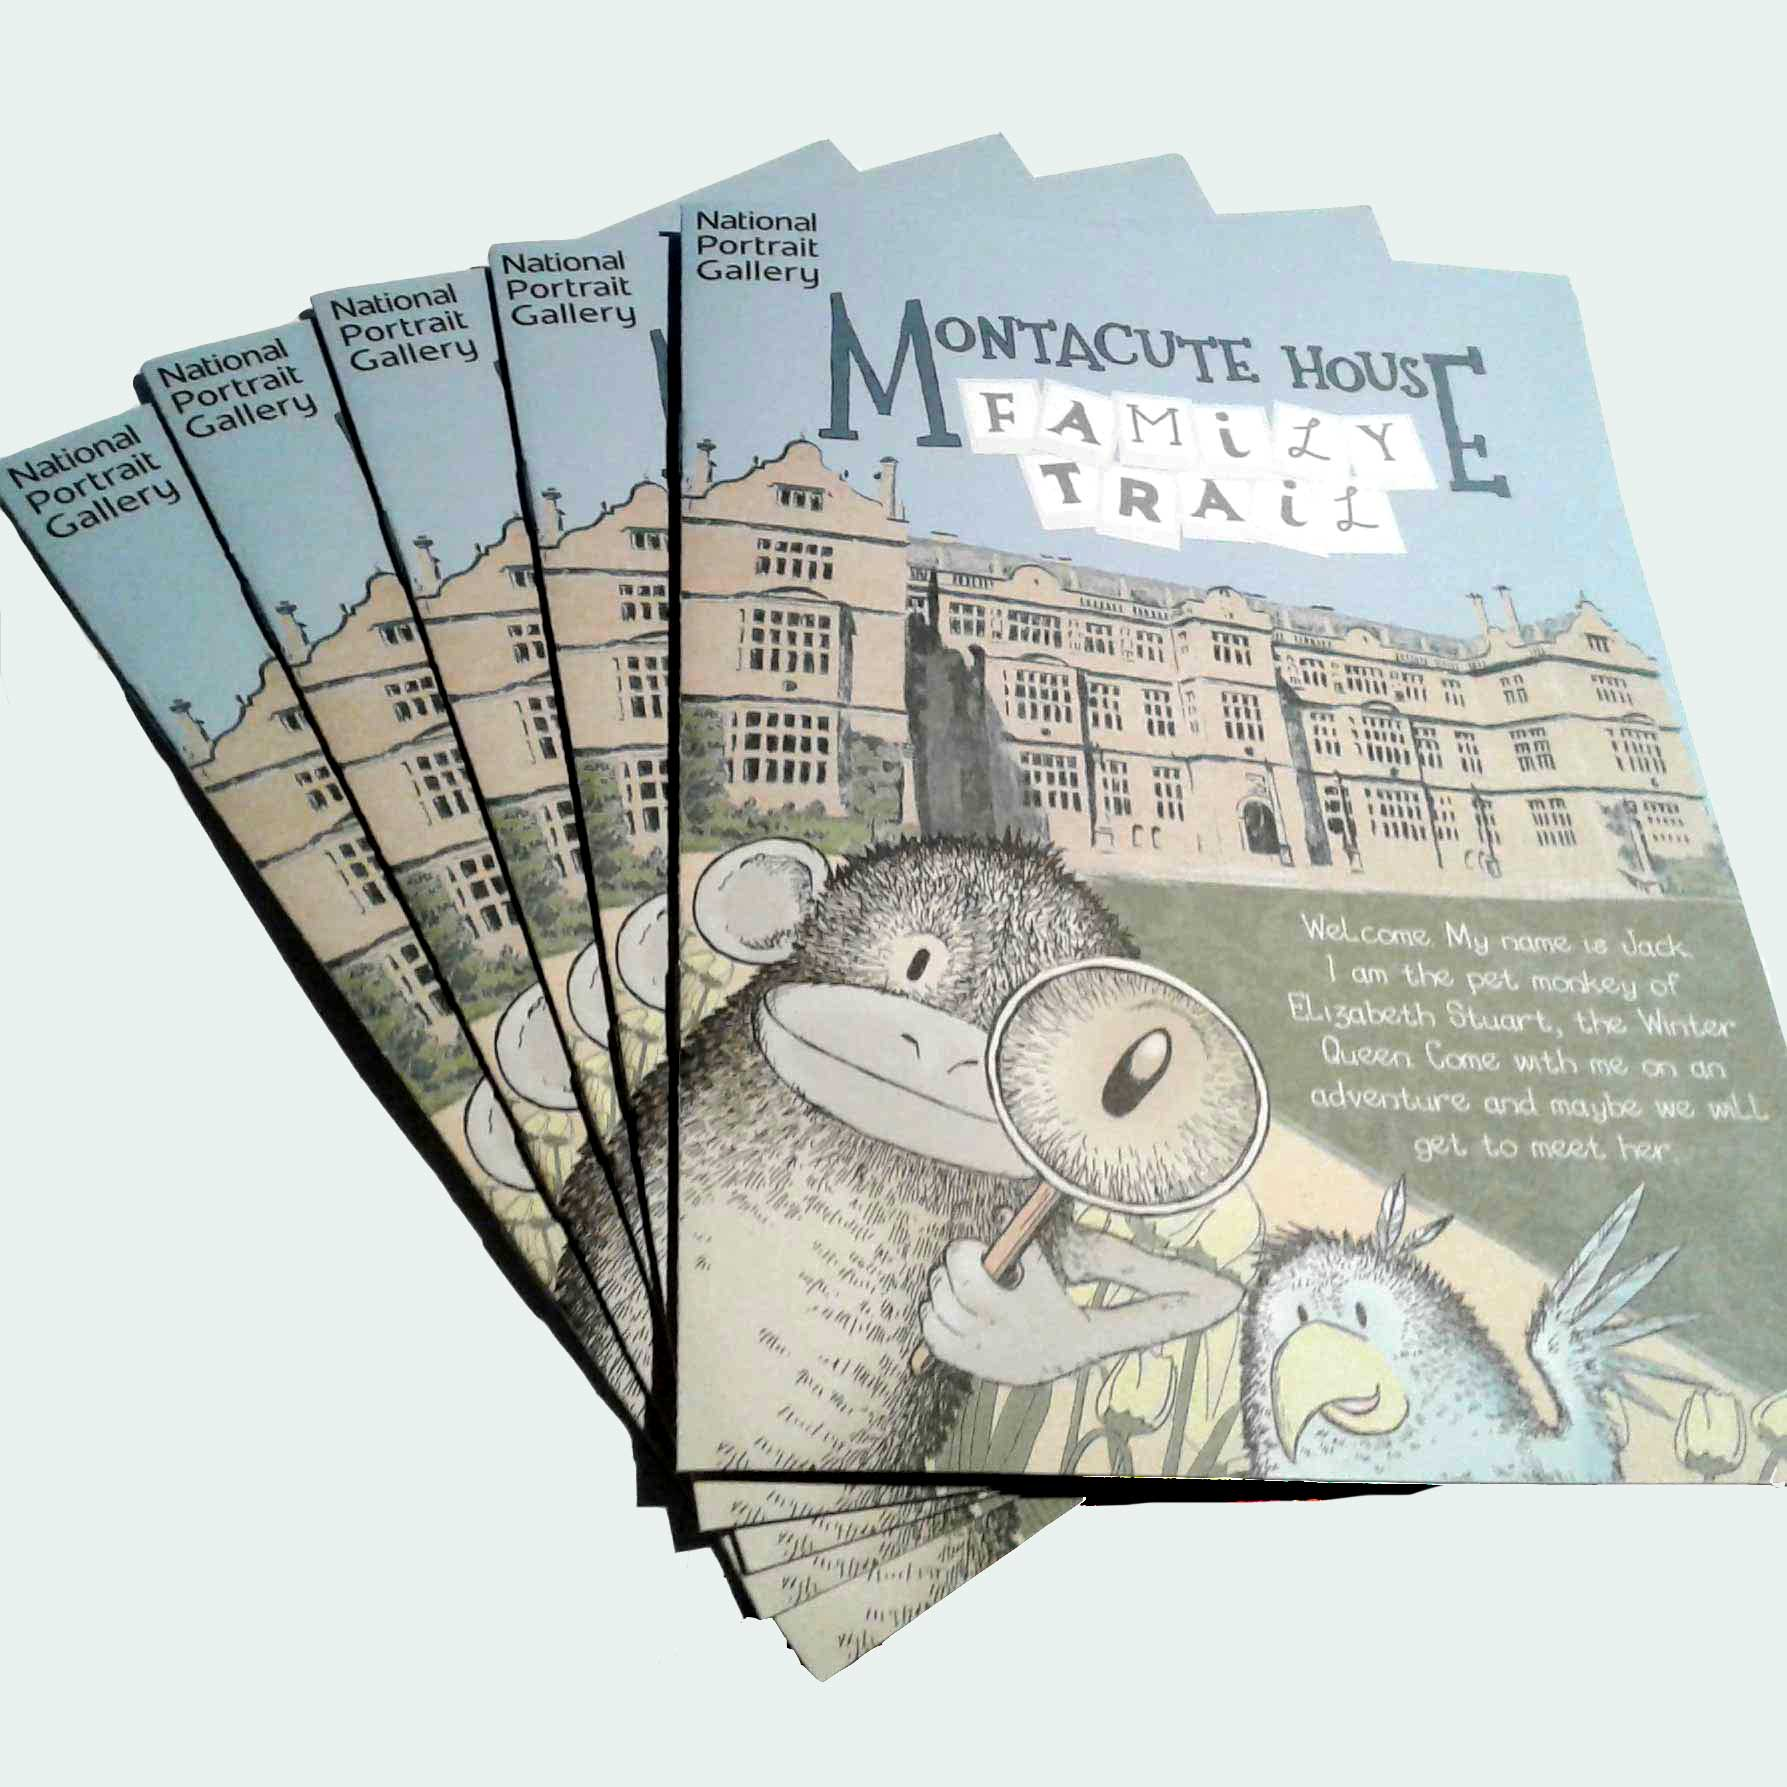 sally barnett illustration designer album cover frome bath bristol montacute house national trust family trail booklet national portrait gallery front cover with jack the monkey and the parrot in front of the house